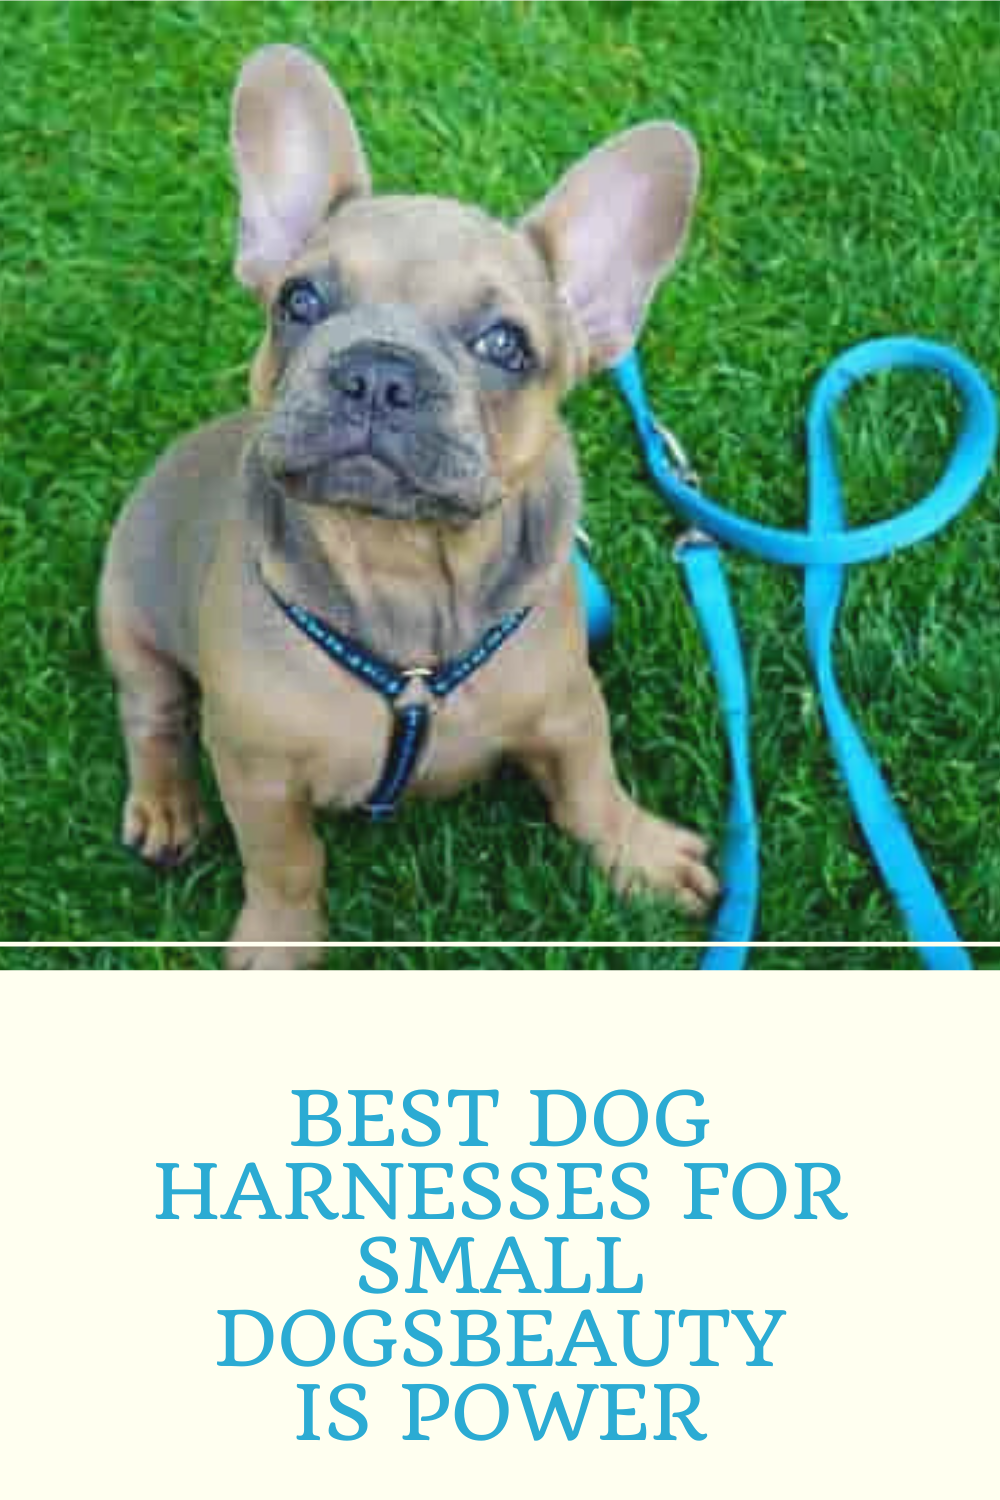 10 Best Dog Harnesses For Small Dogs In 2020 In 2020 Dog Harness Small Dog Harness Dogs